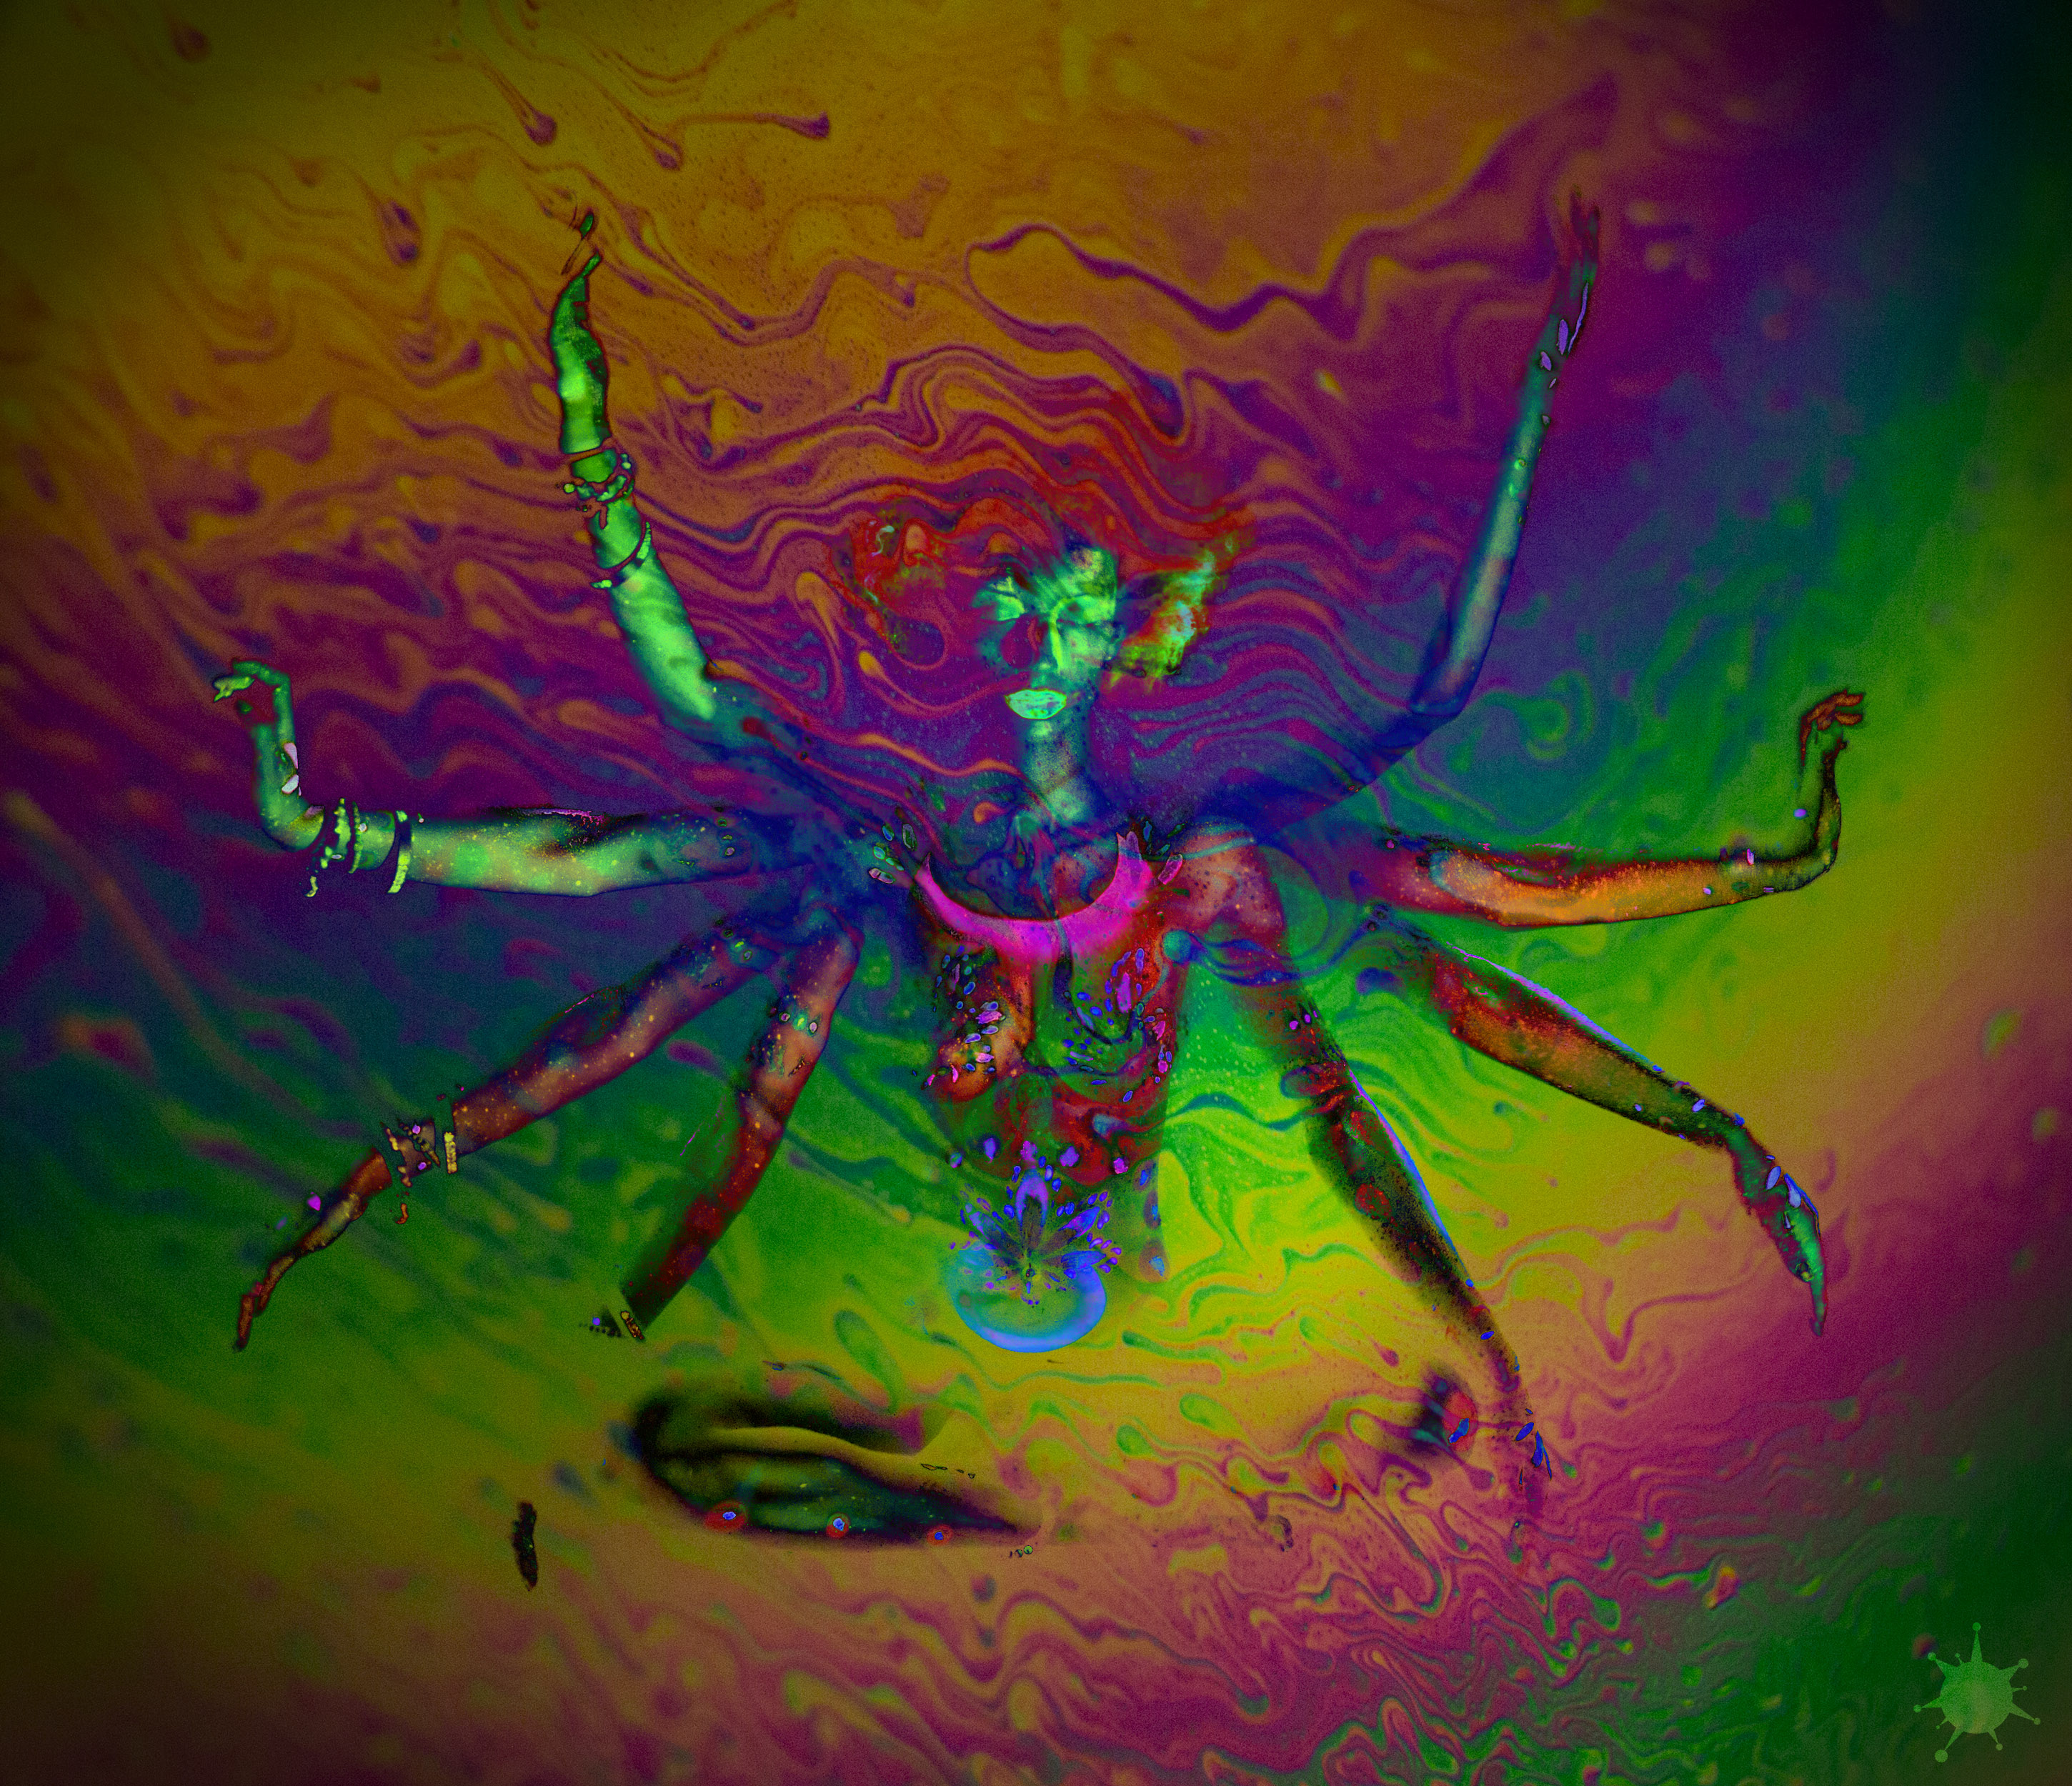 Psychedelic Goddess by moonglowdude on DeviantArt